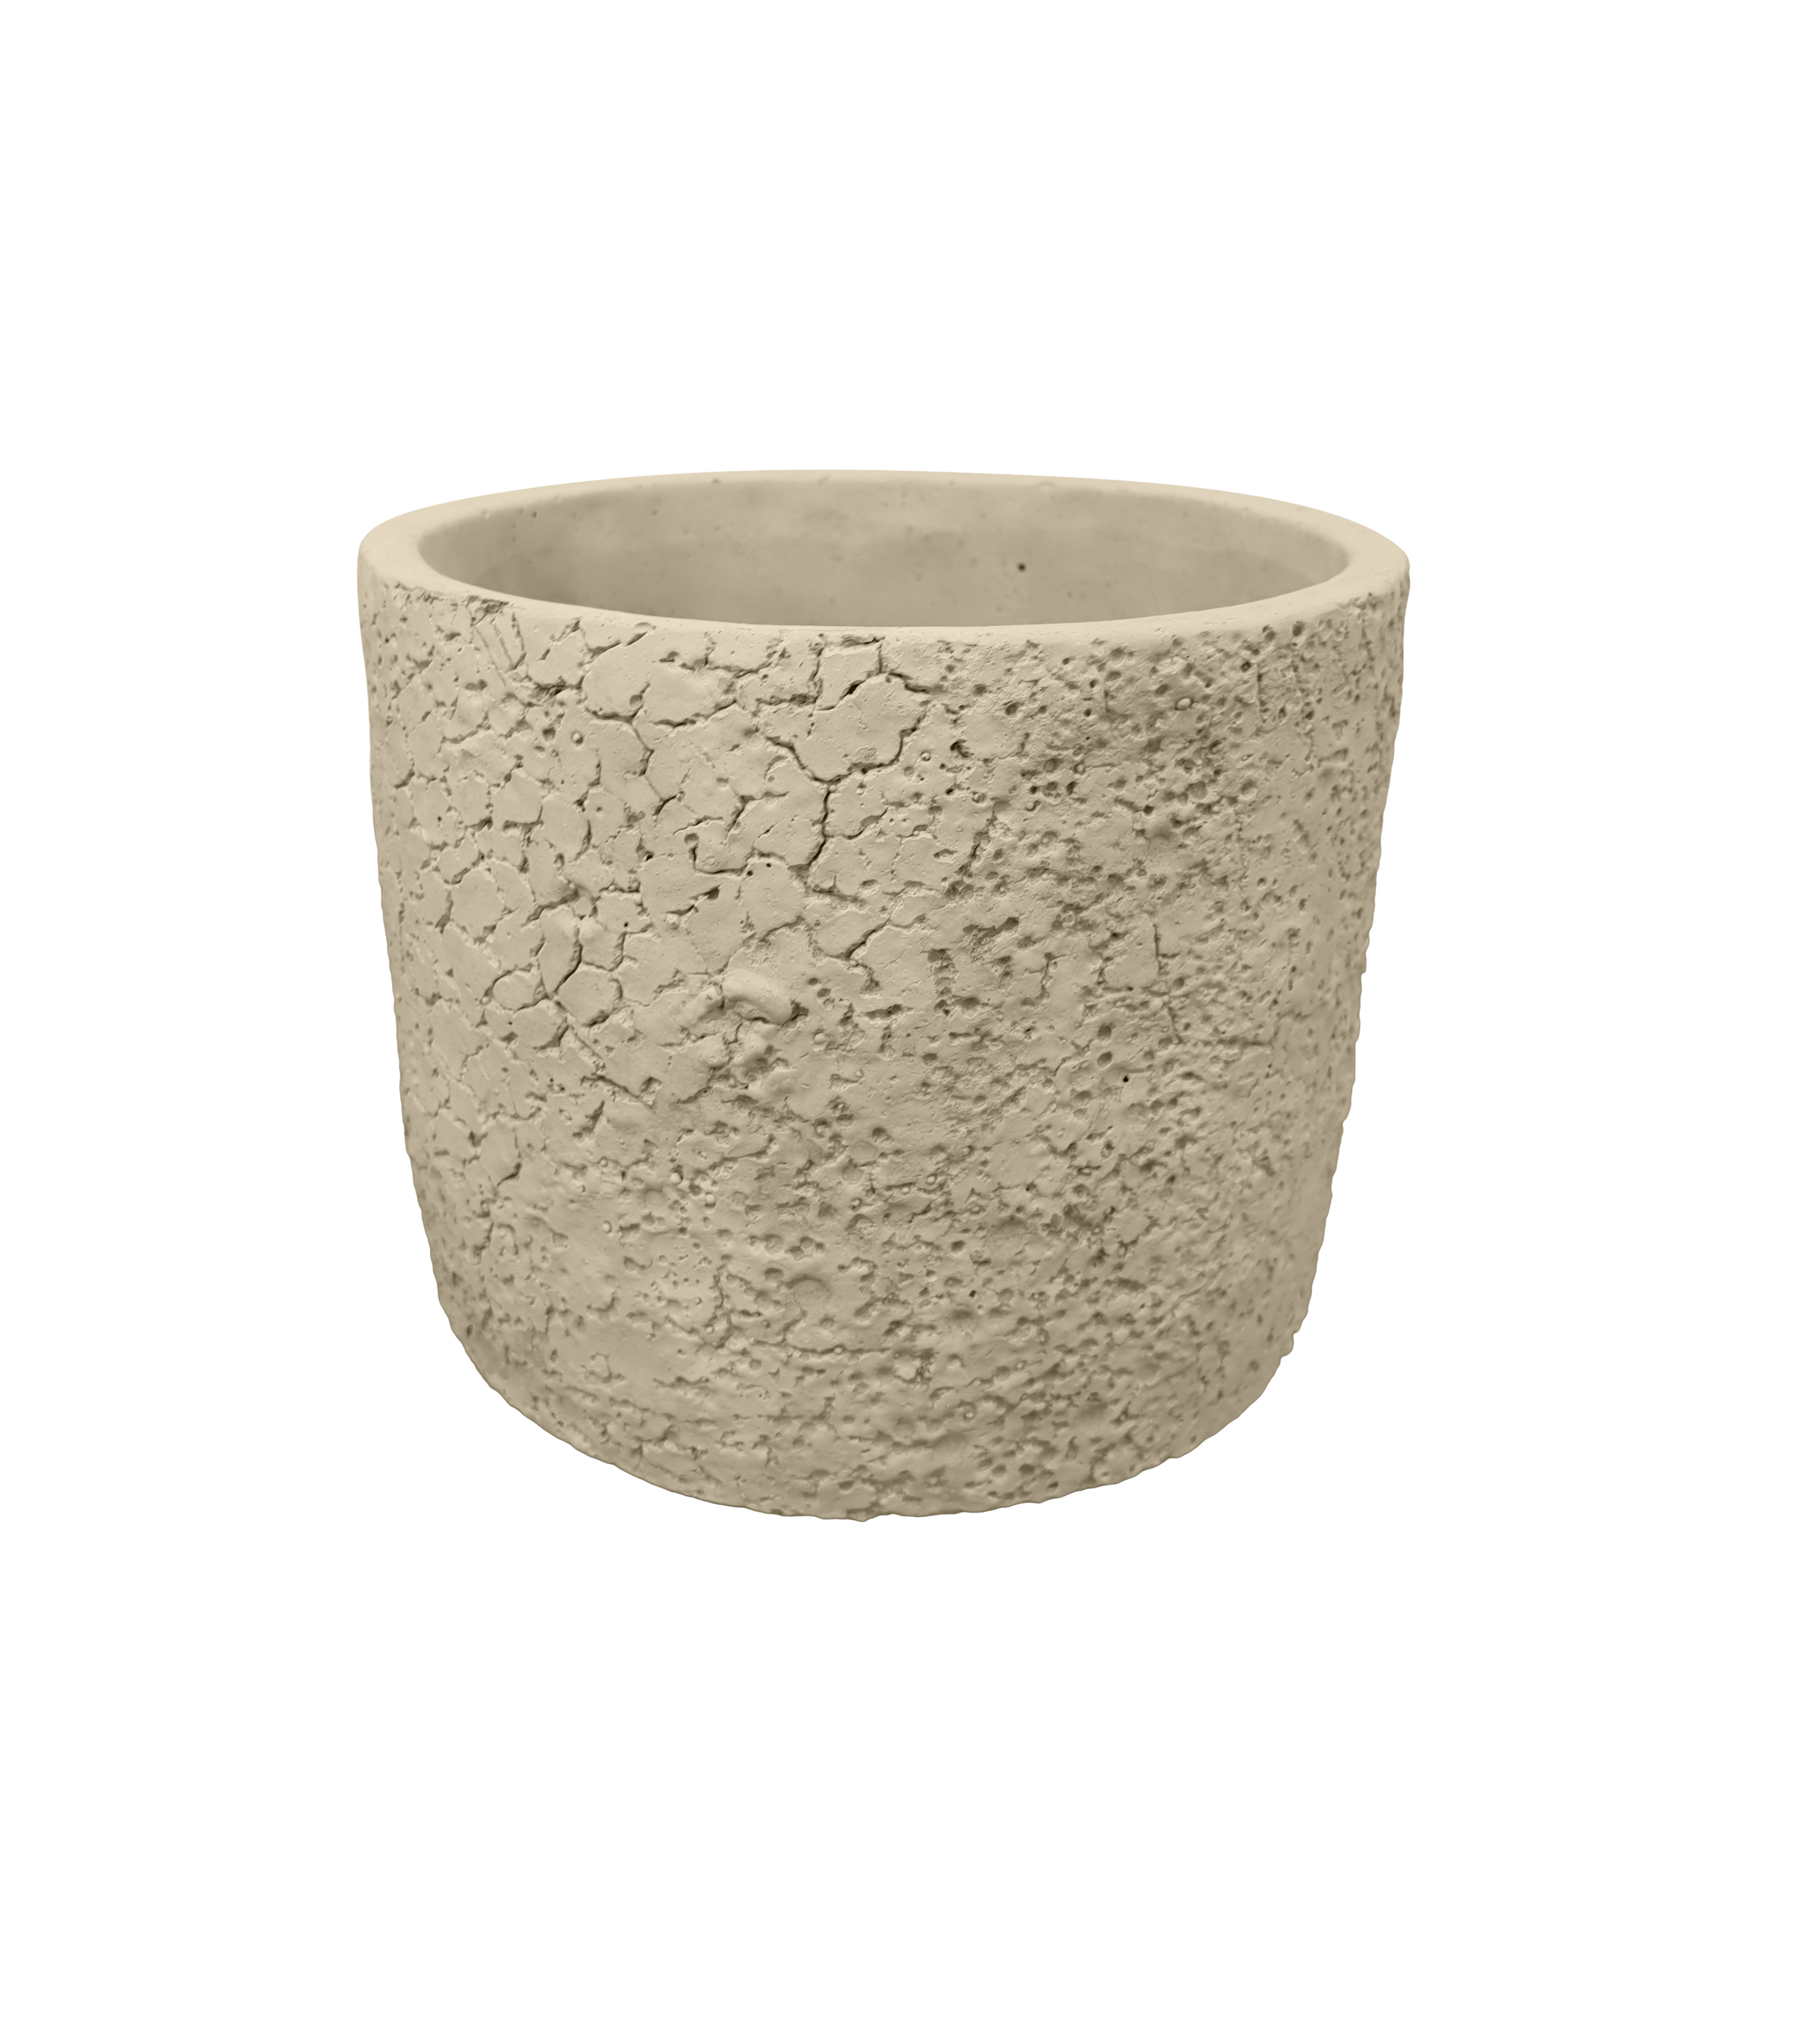 Tuft pots from